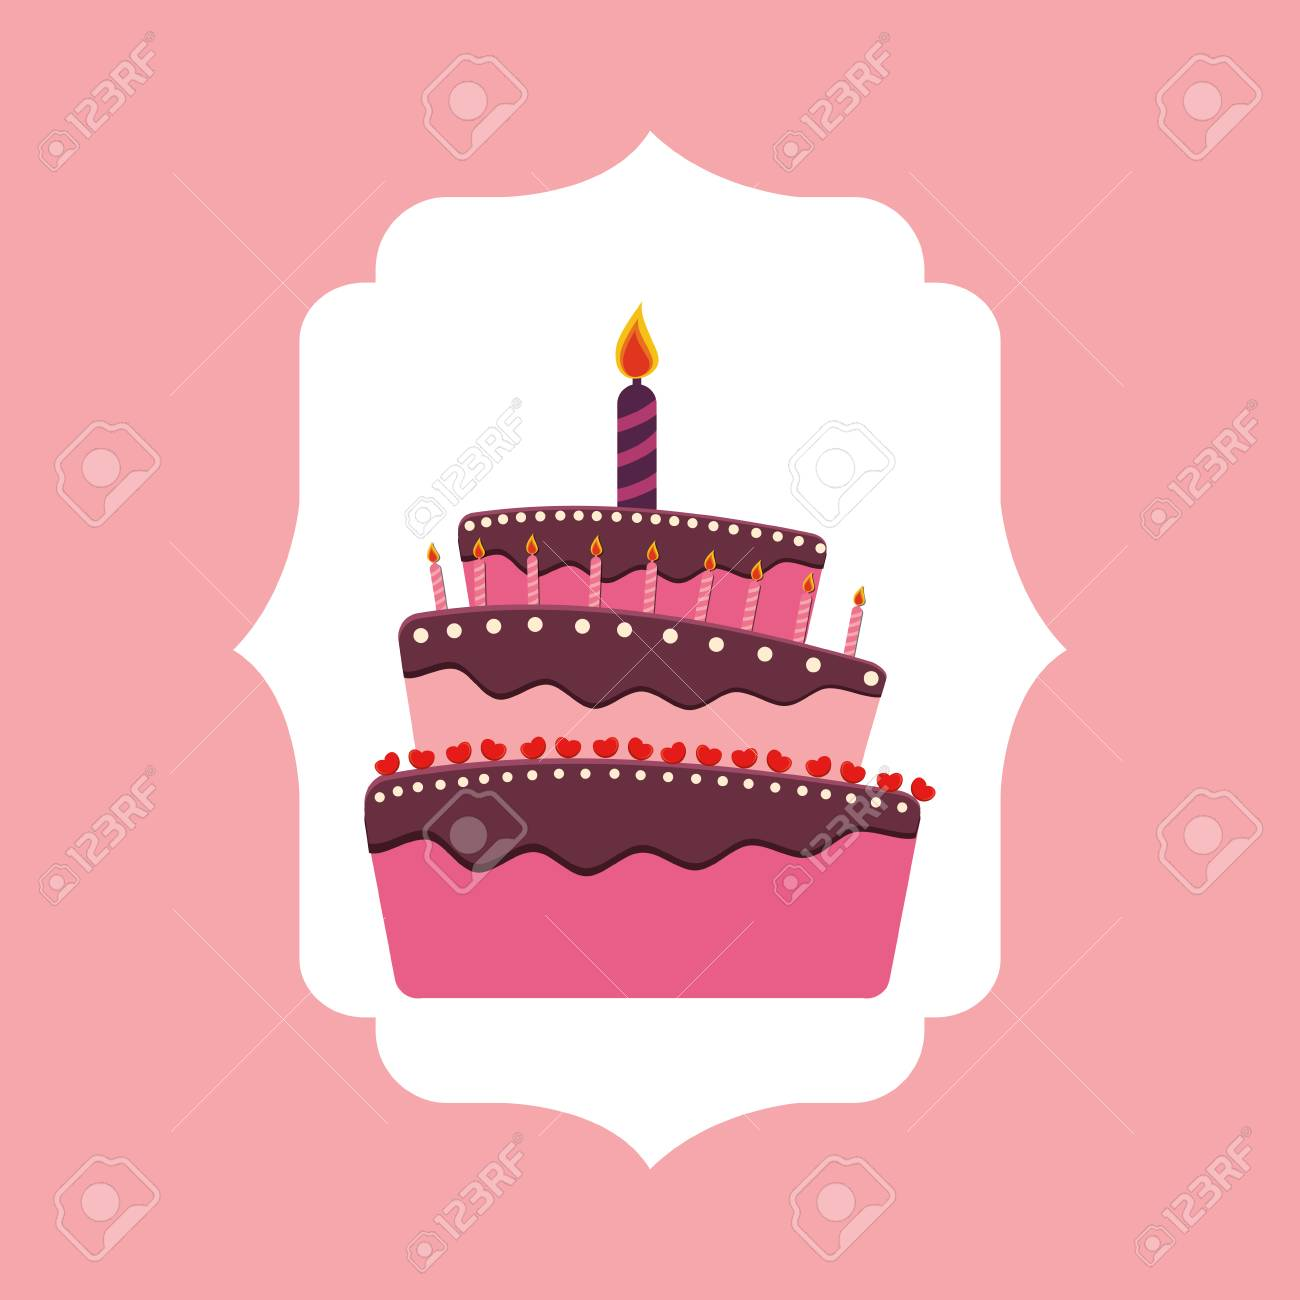 Sensational Happy Birthday Cake Icon Vector Illustration Graphic Design Funny Birthday Cards Online Alyptdamsfinfo